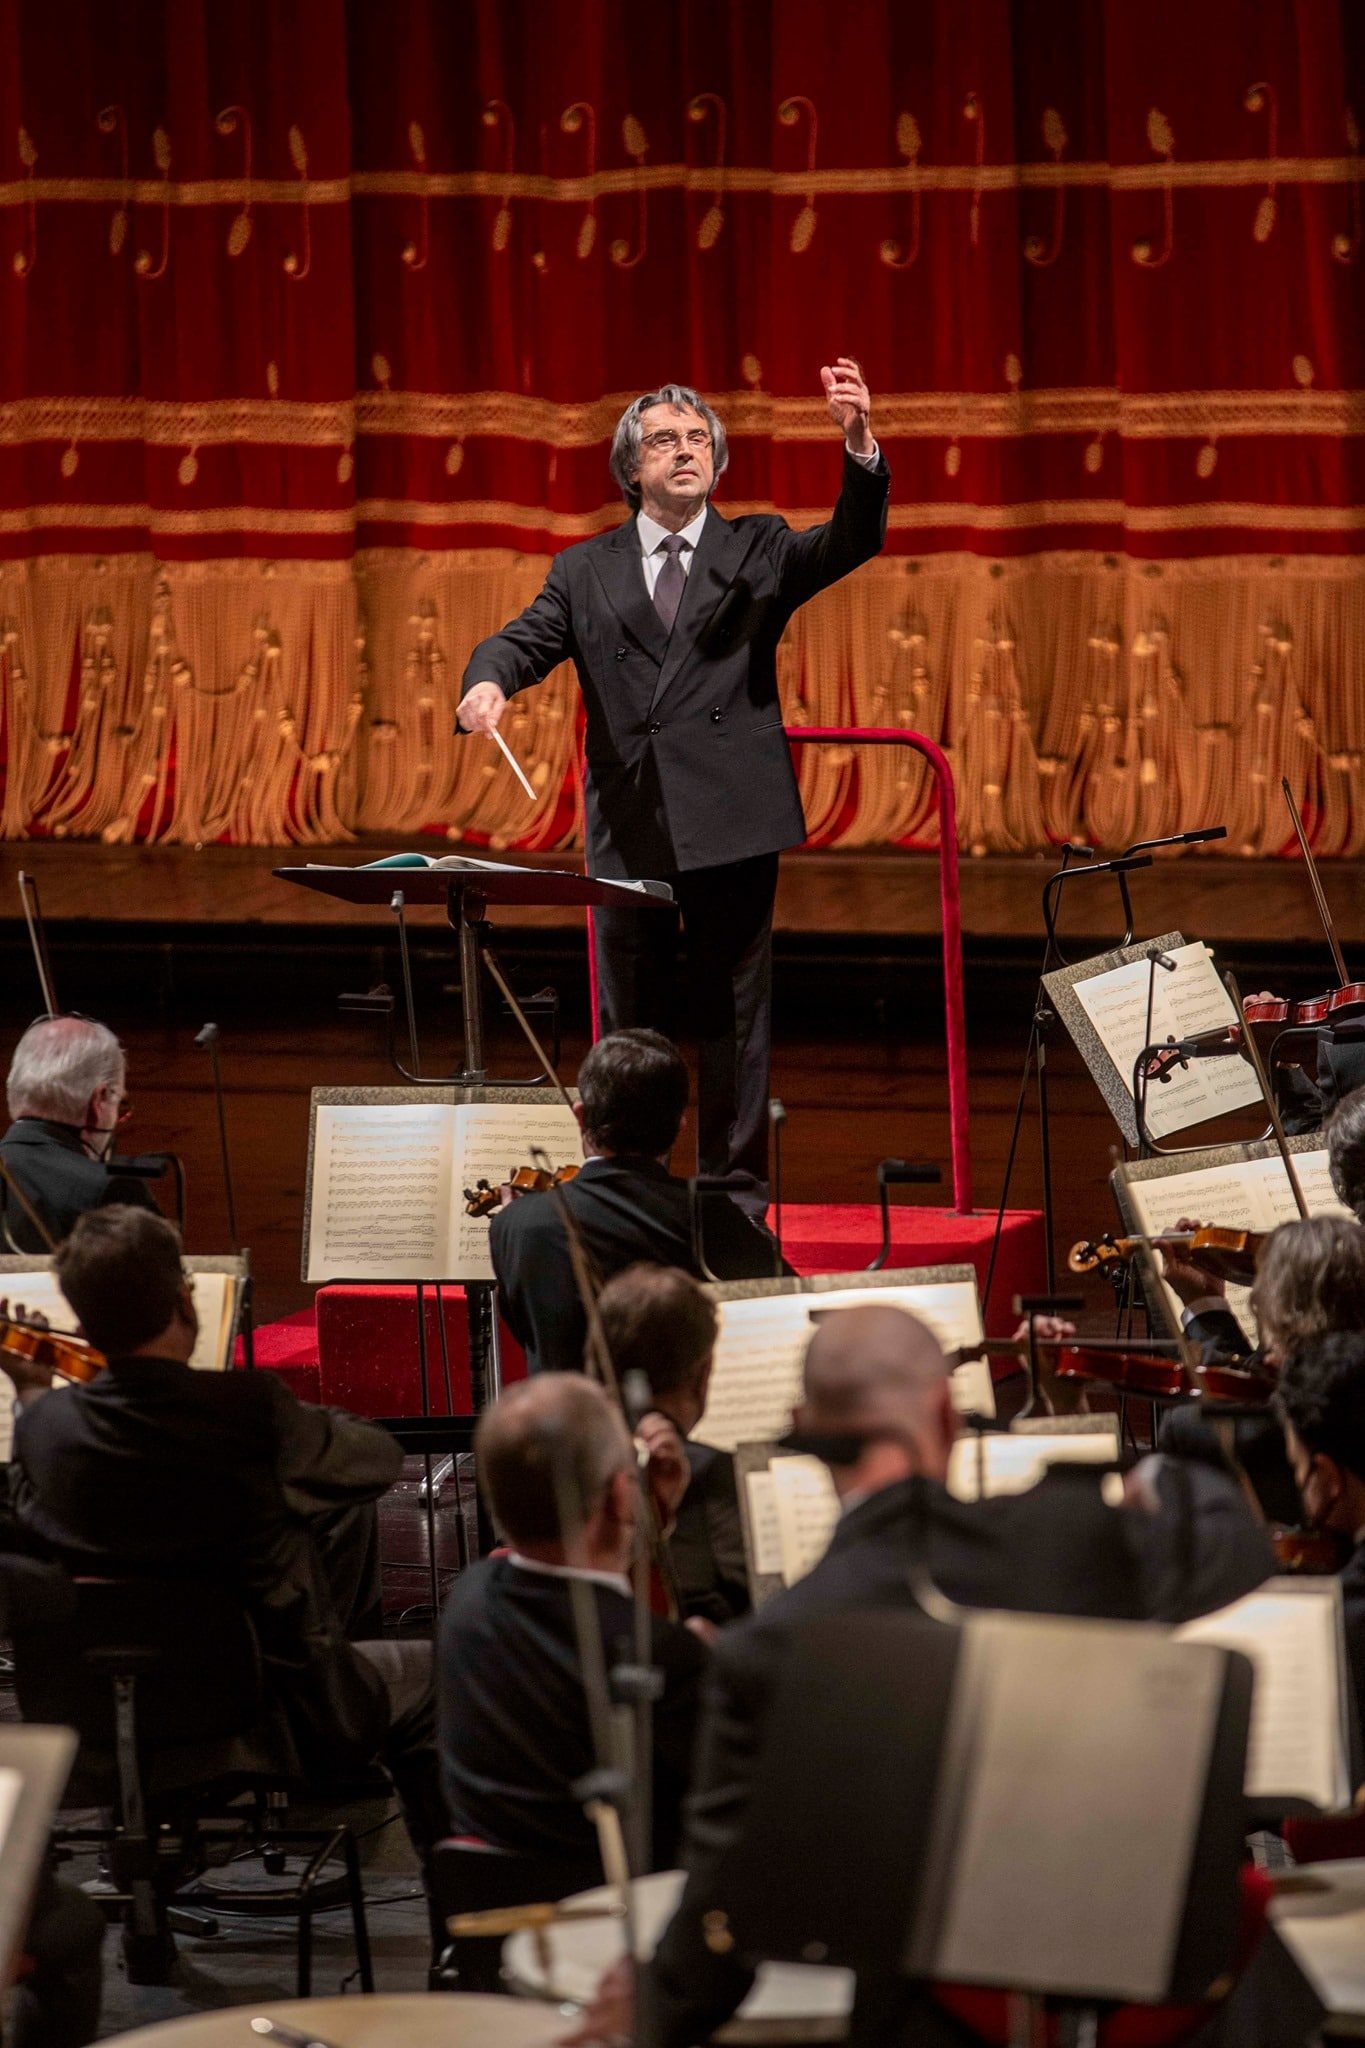 Riccardo Muti faces ban for life at La Scala